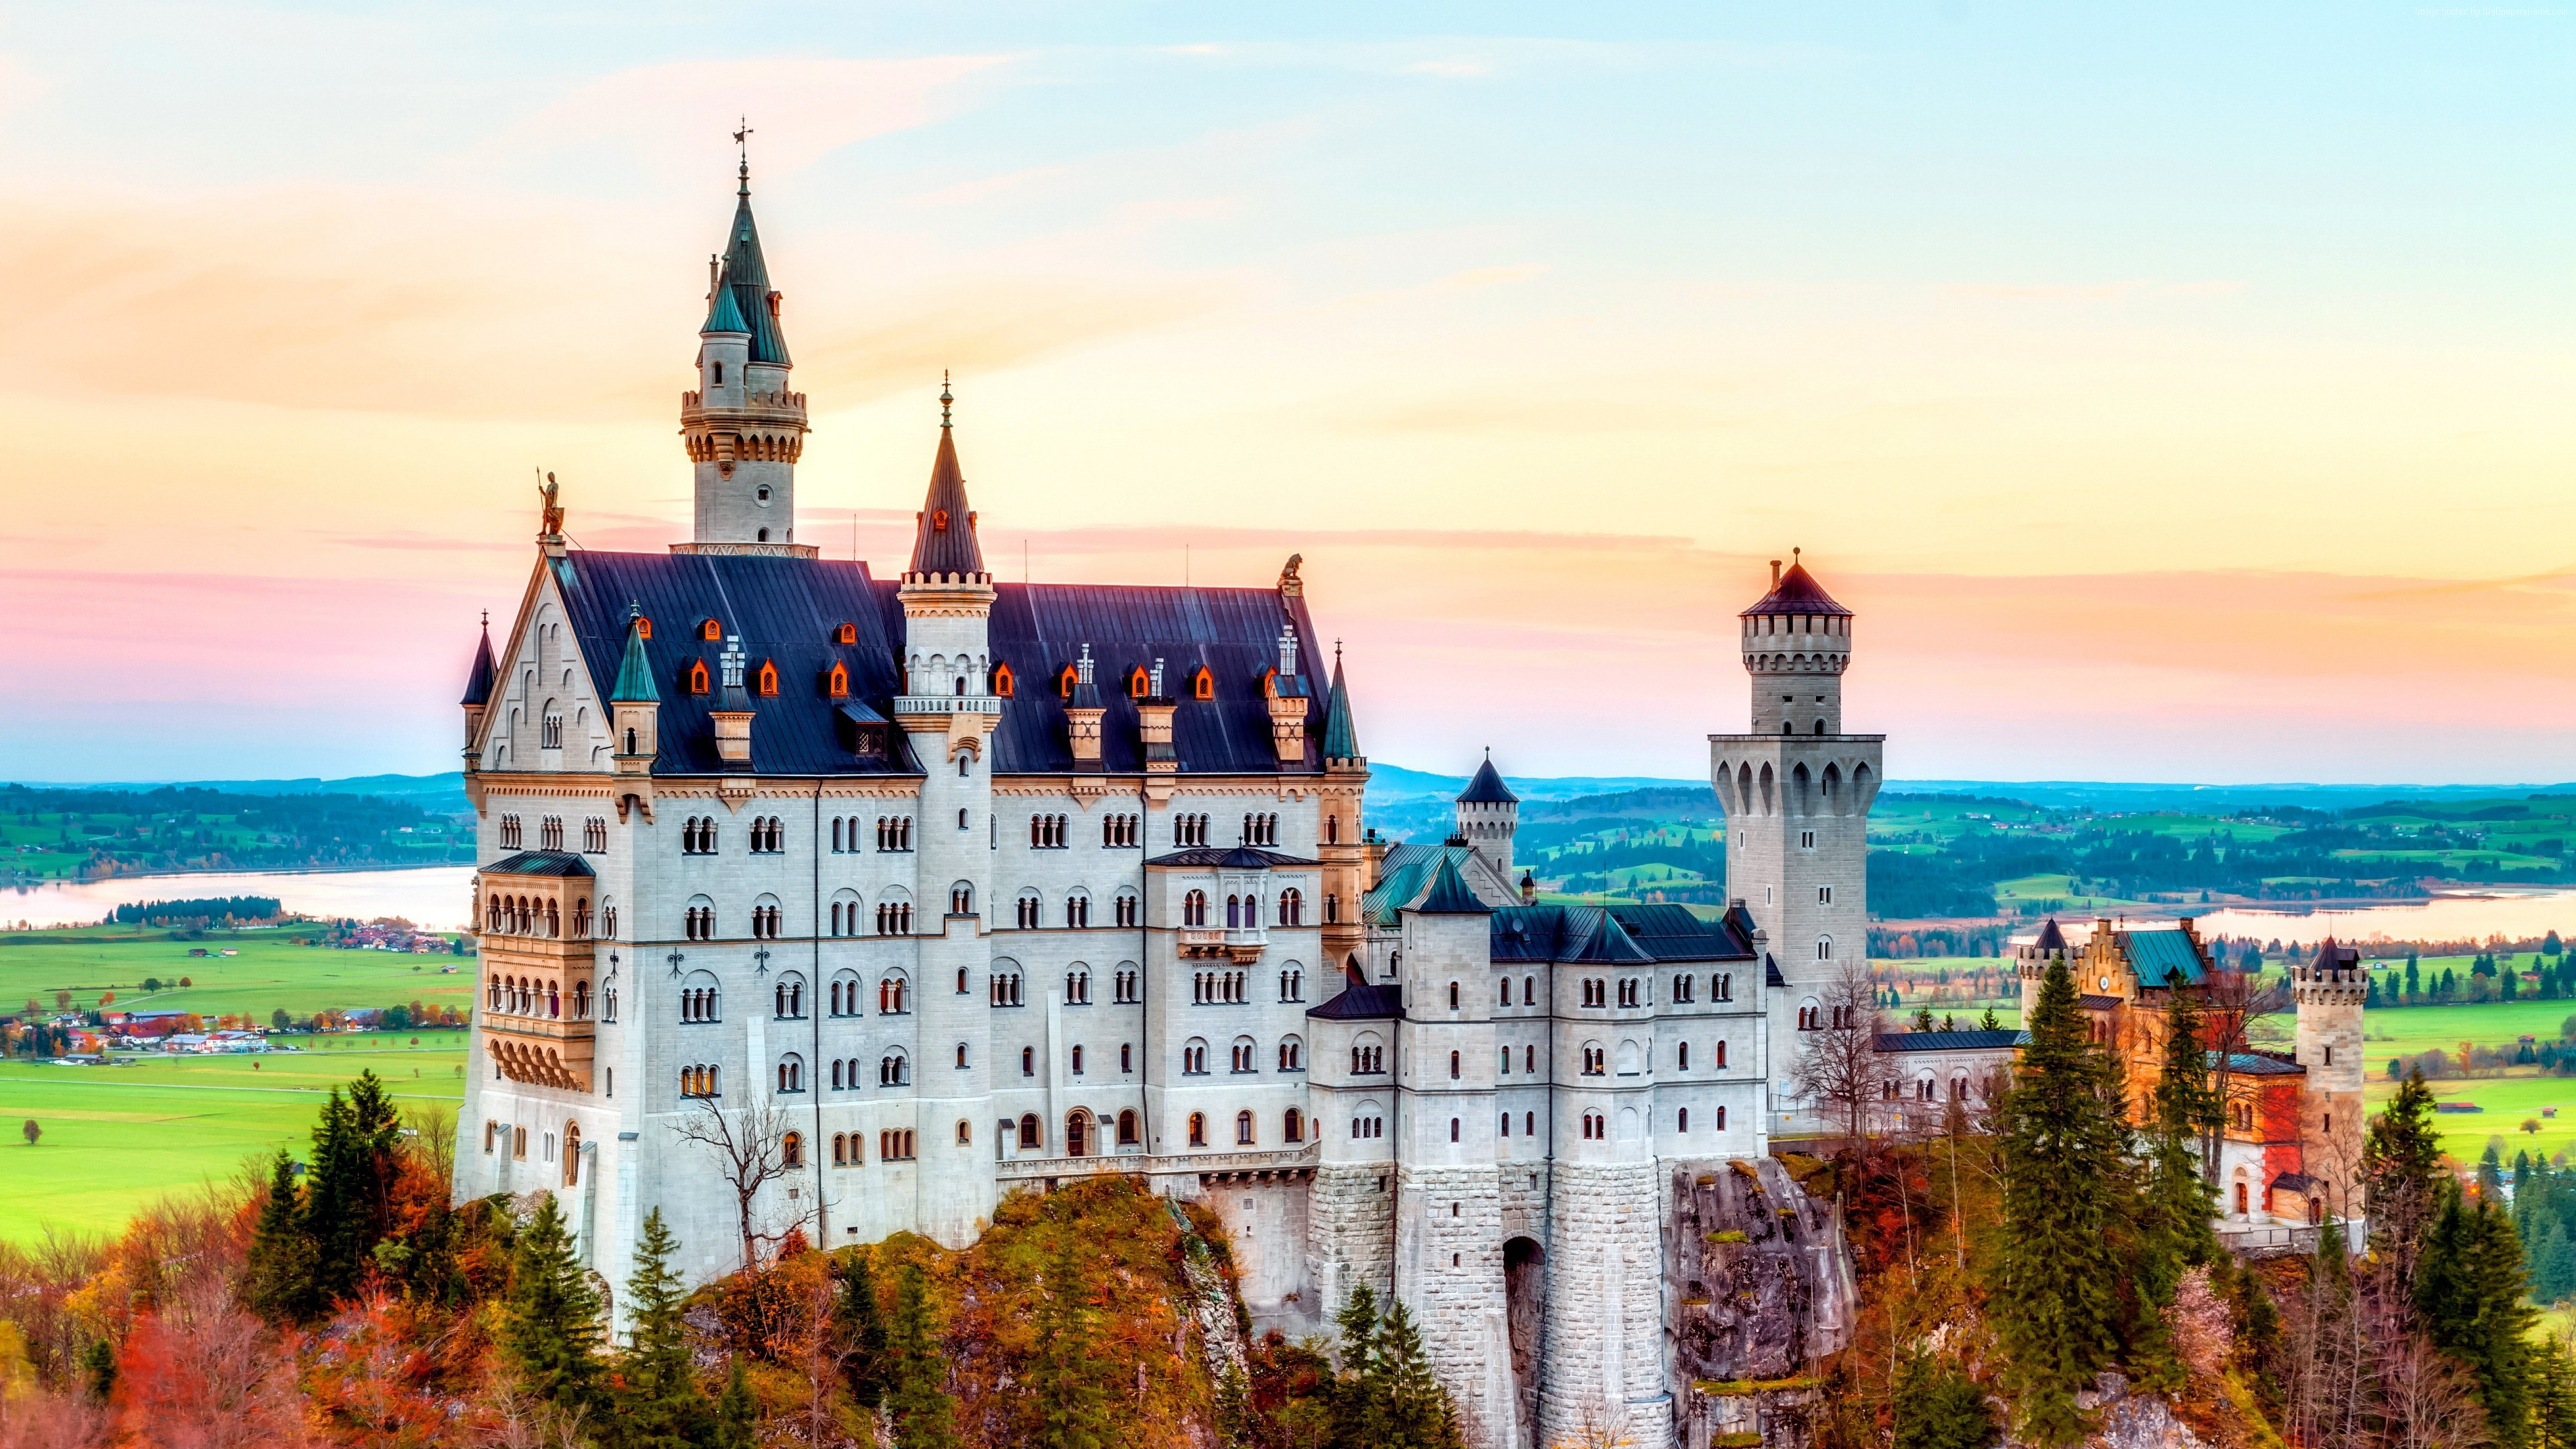 Neuschwanstein Castle Wallpapers Images Photos Pictures